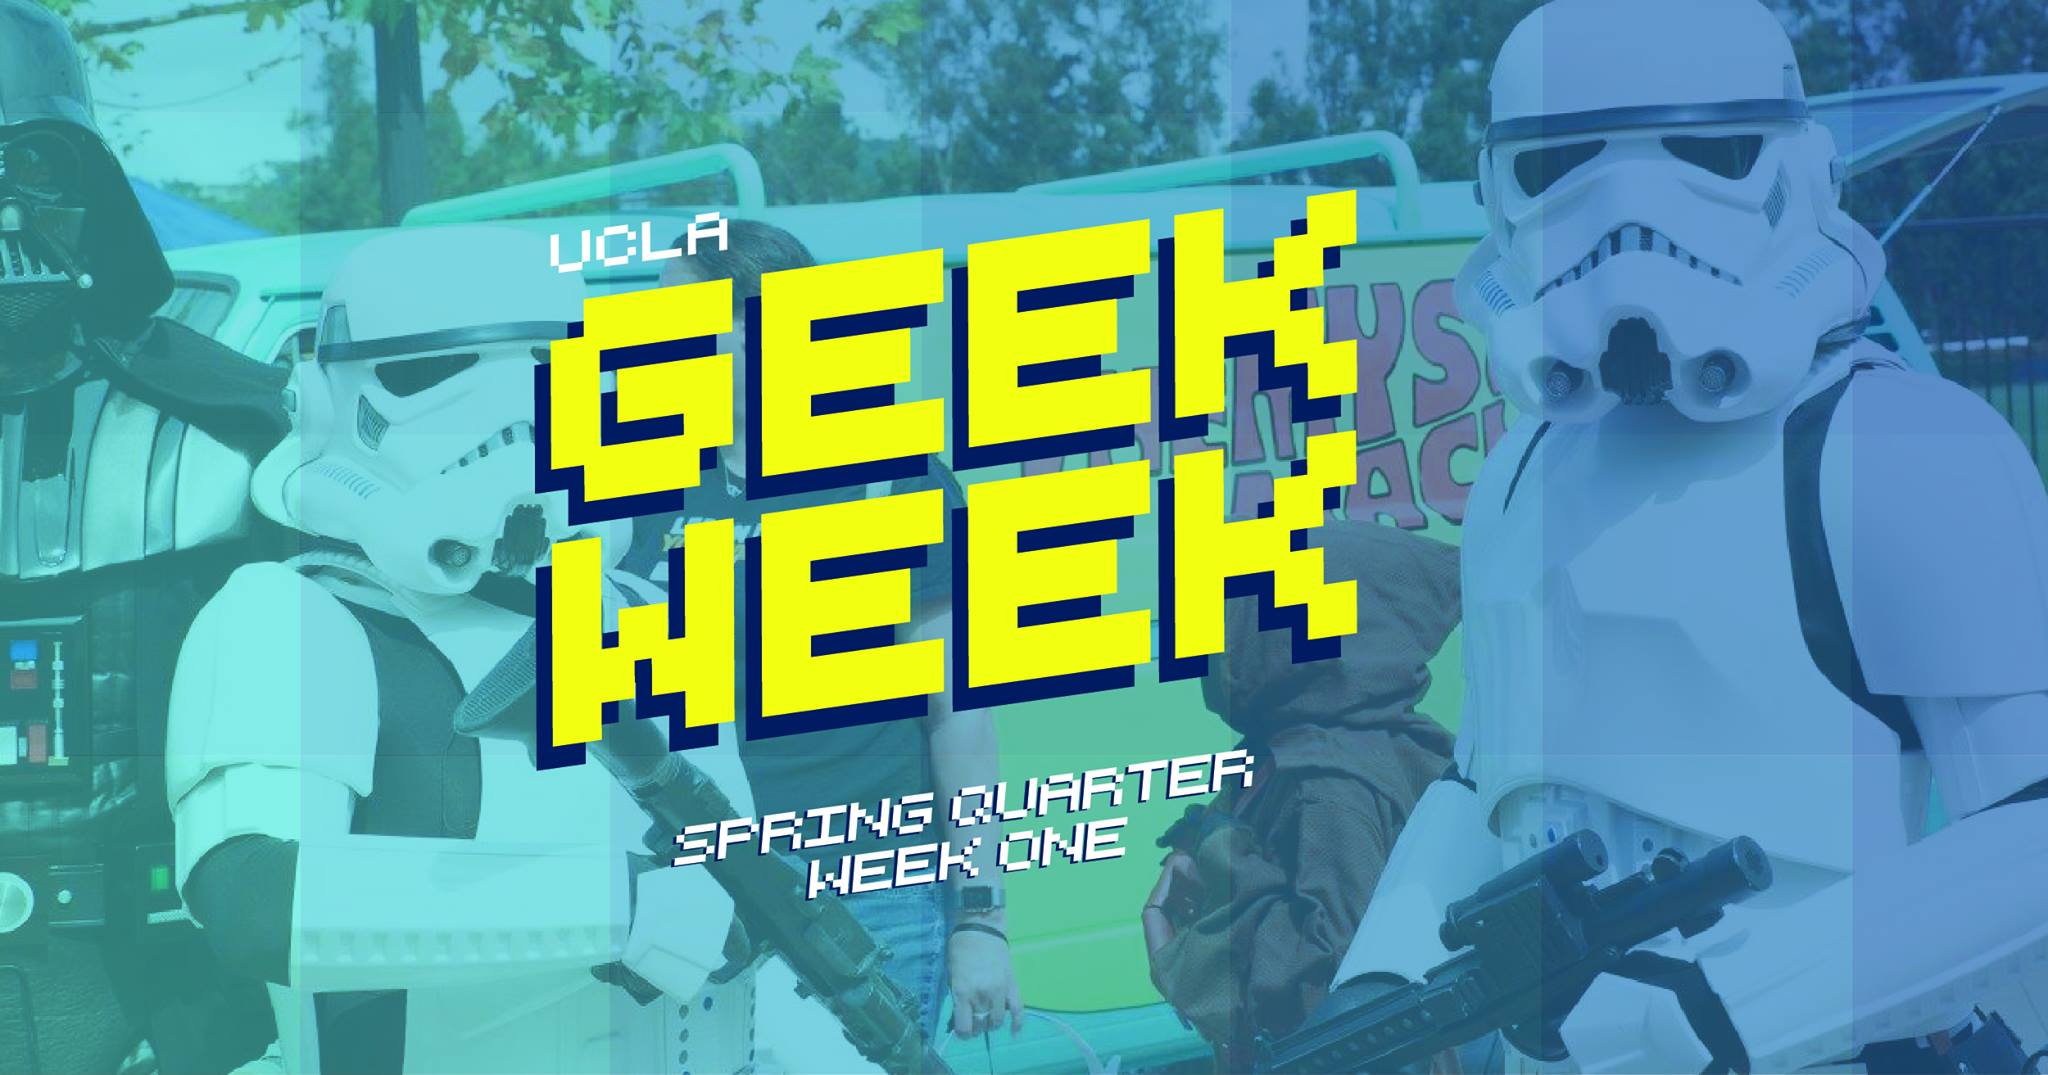 Geek Week 2017 widescreen logo